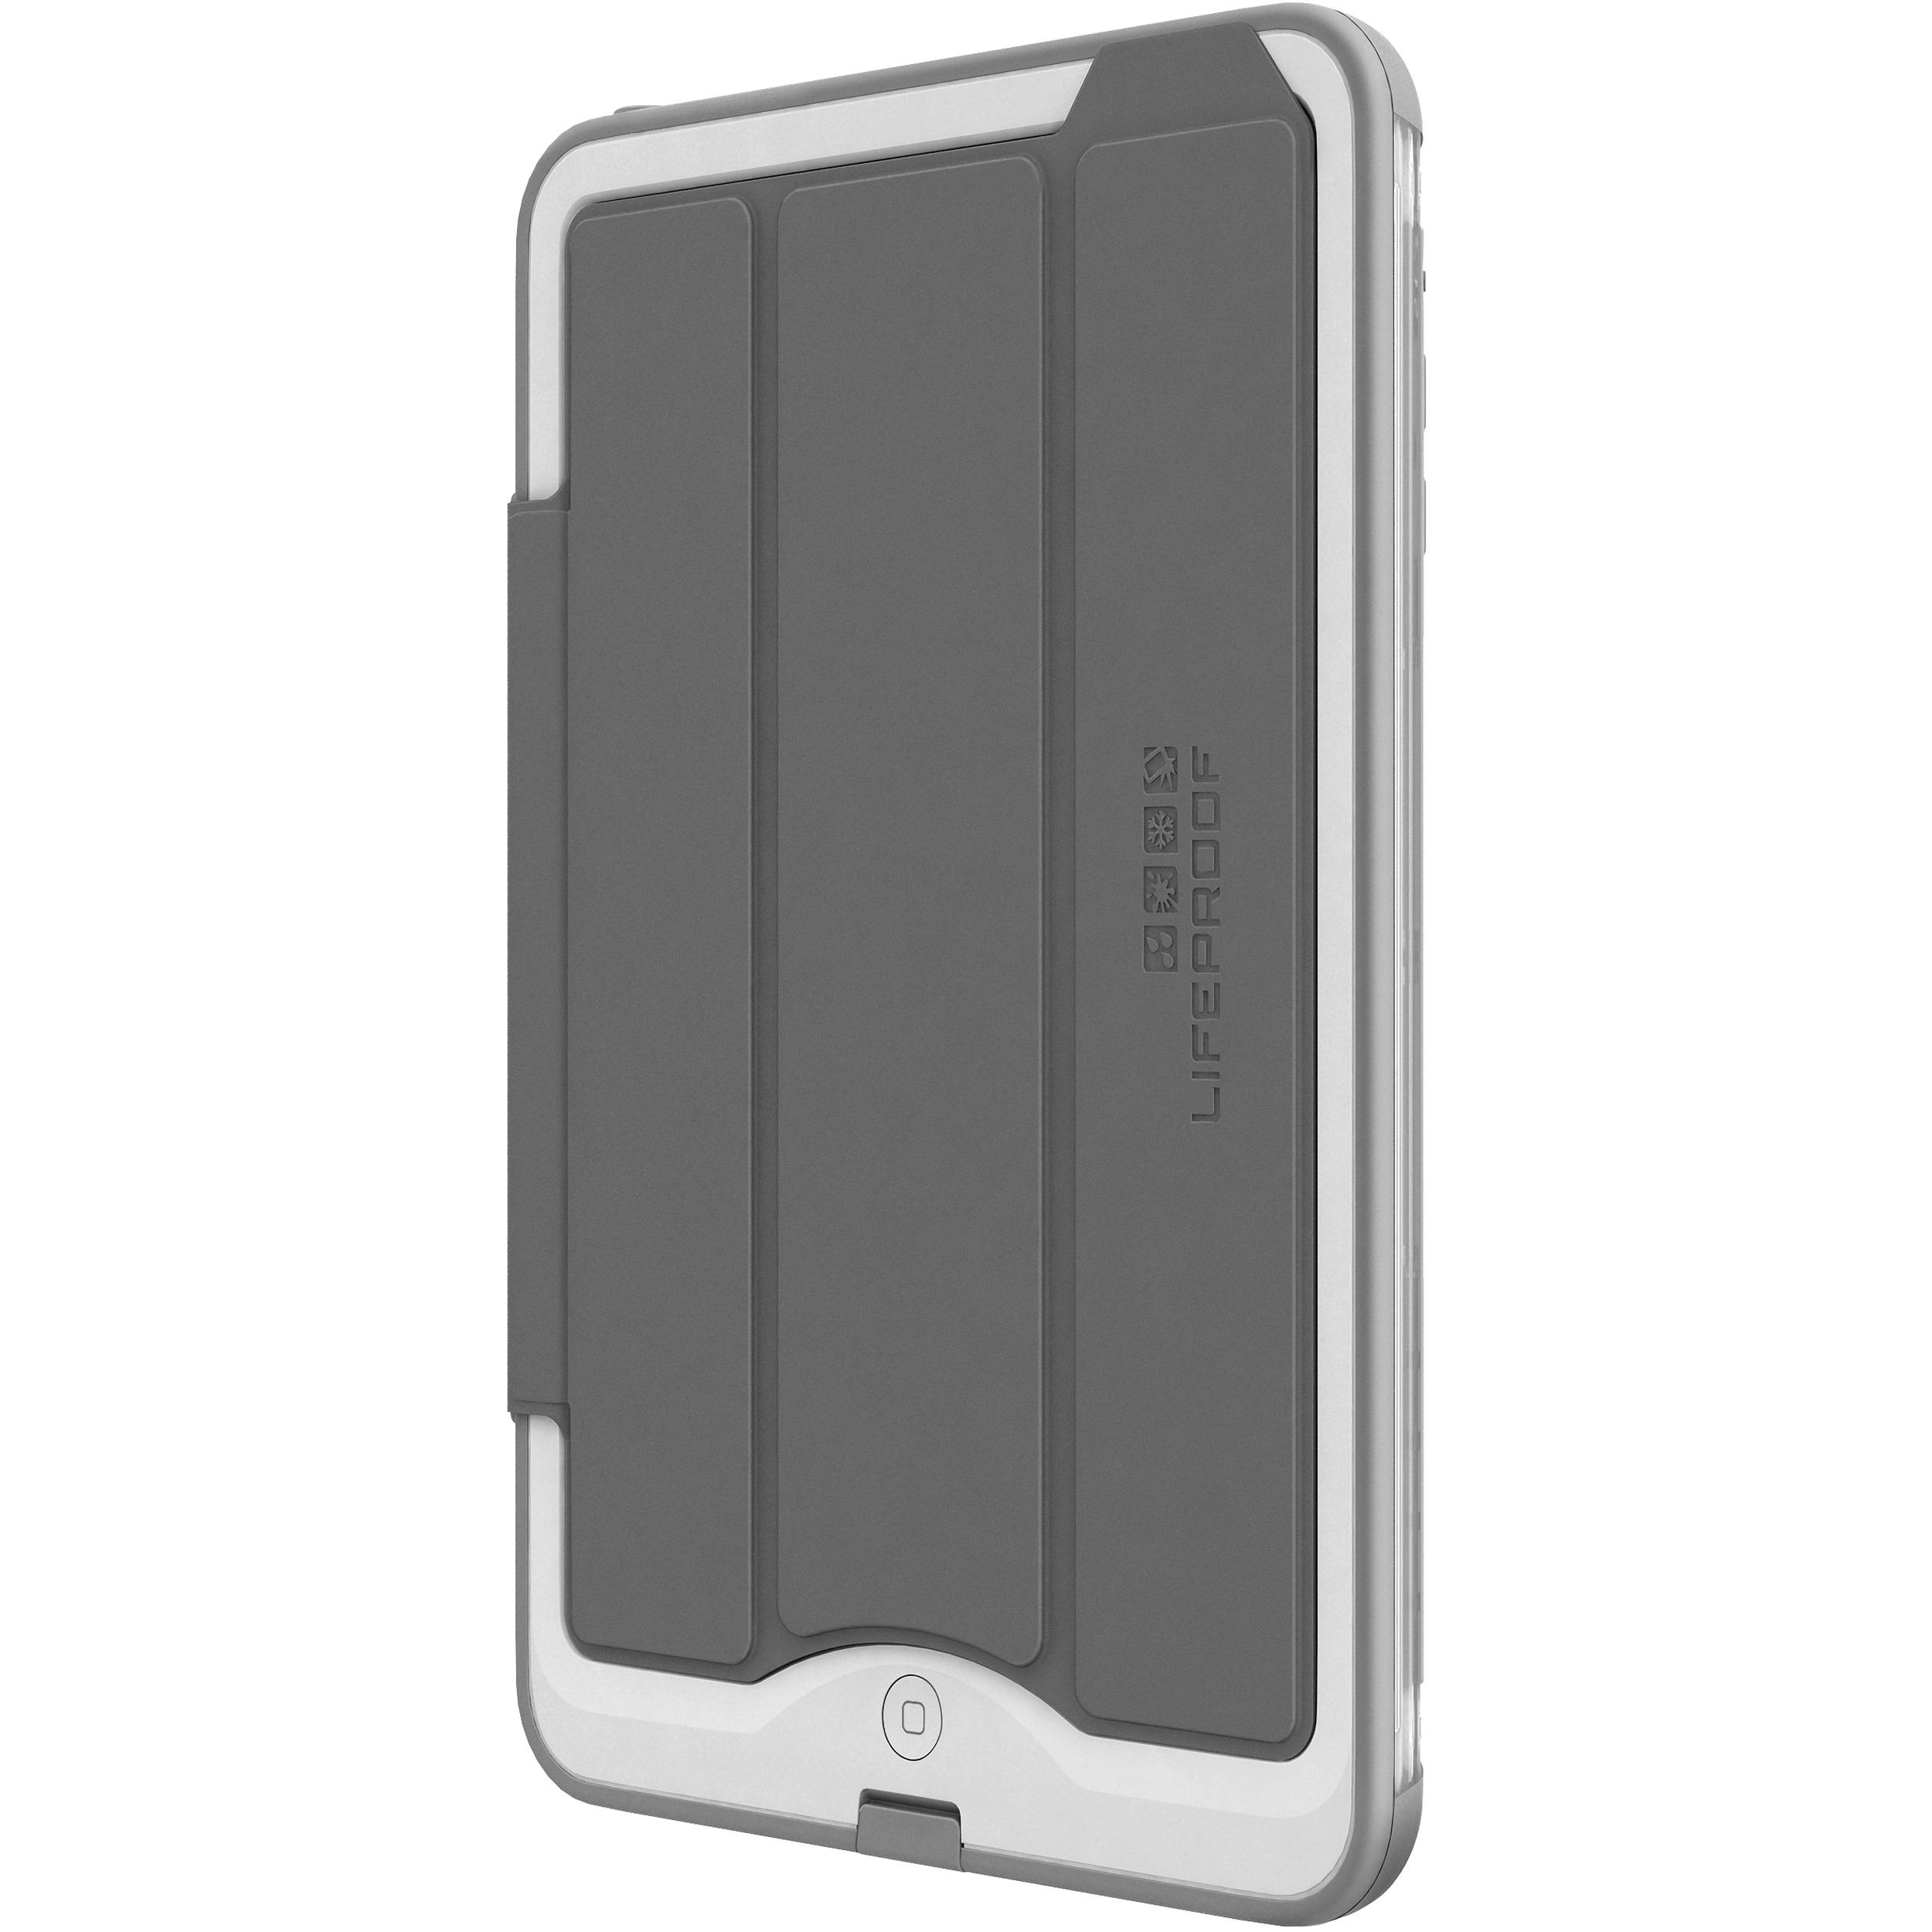 size 40 df6e1 133d3 LifeProof Portfolio Cover/Stand for the iPad mini 1/2/3 nüüd (Gray)